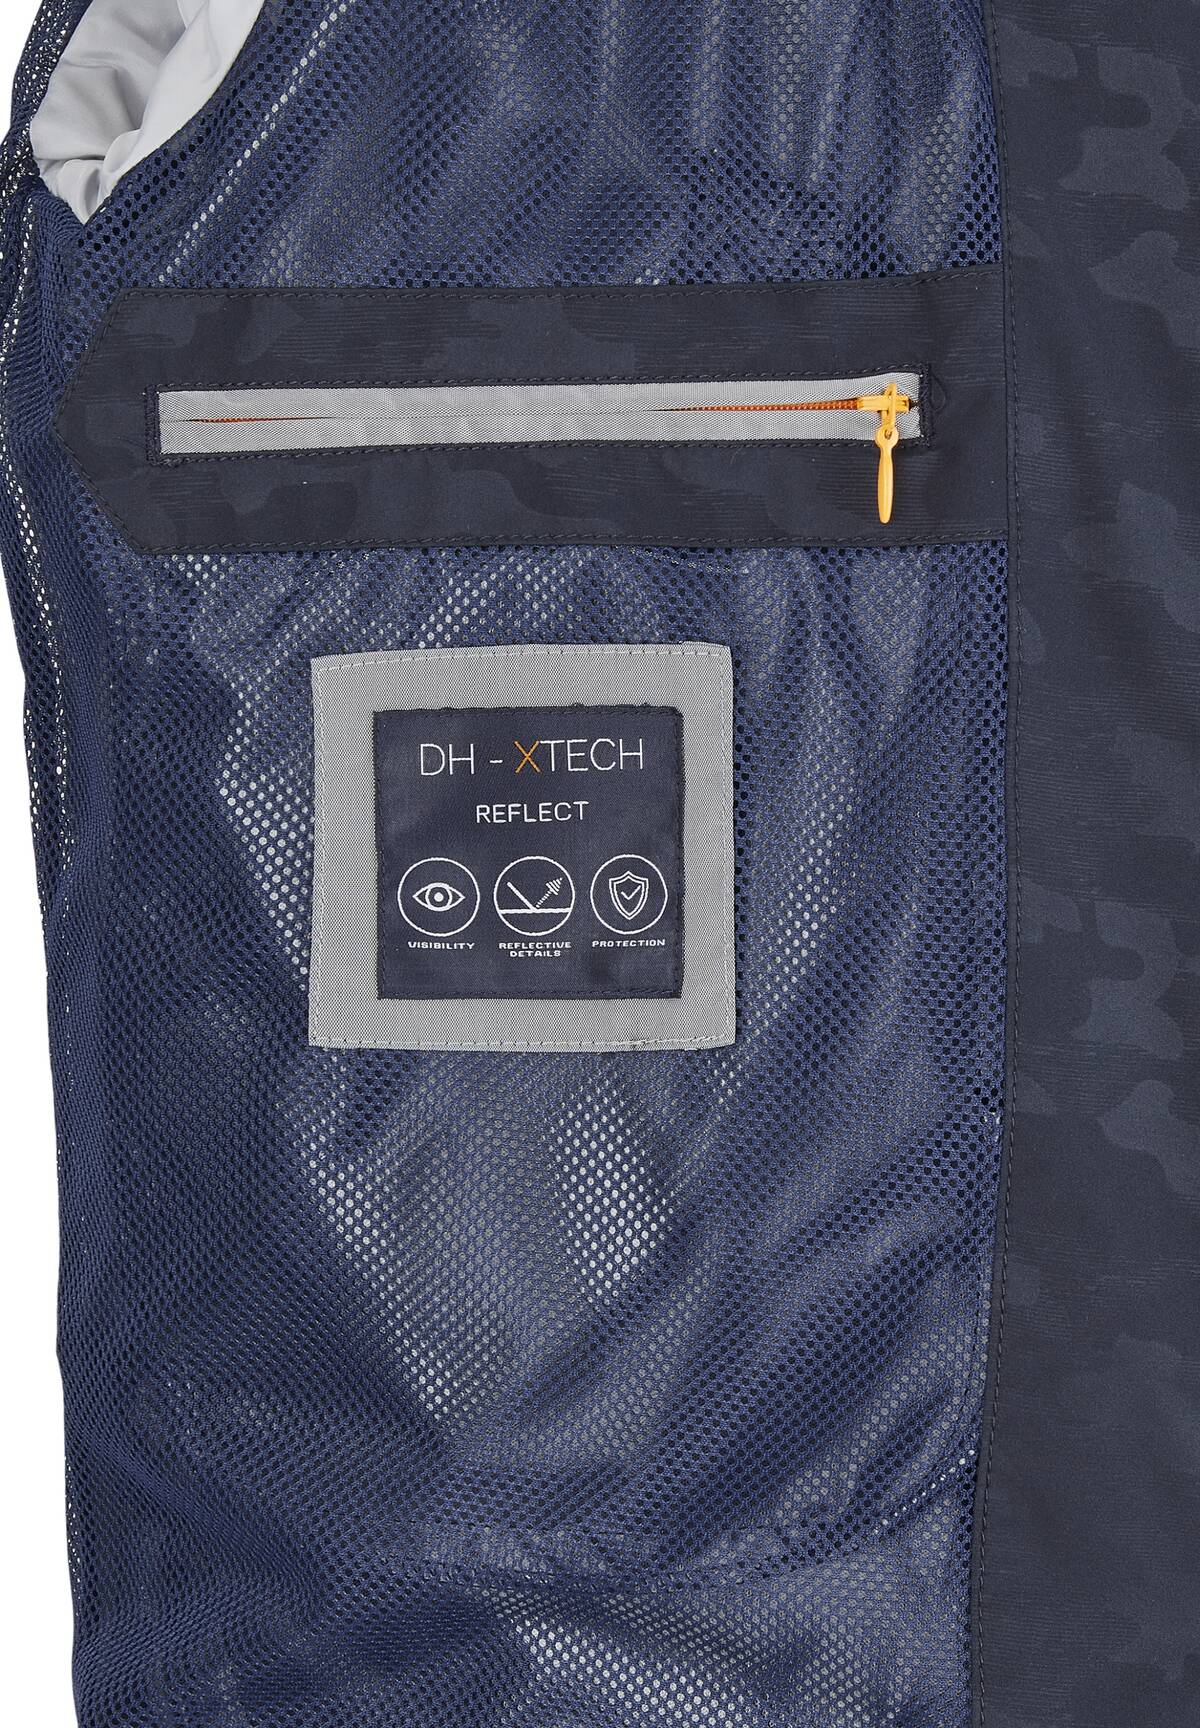 Blouson DH XTECH REFLECT /